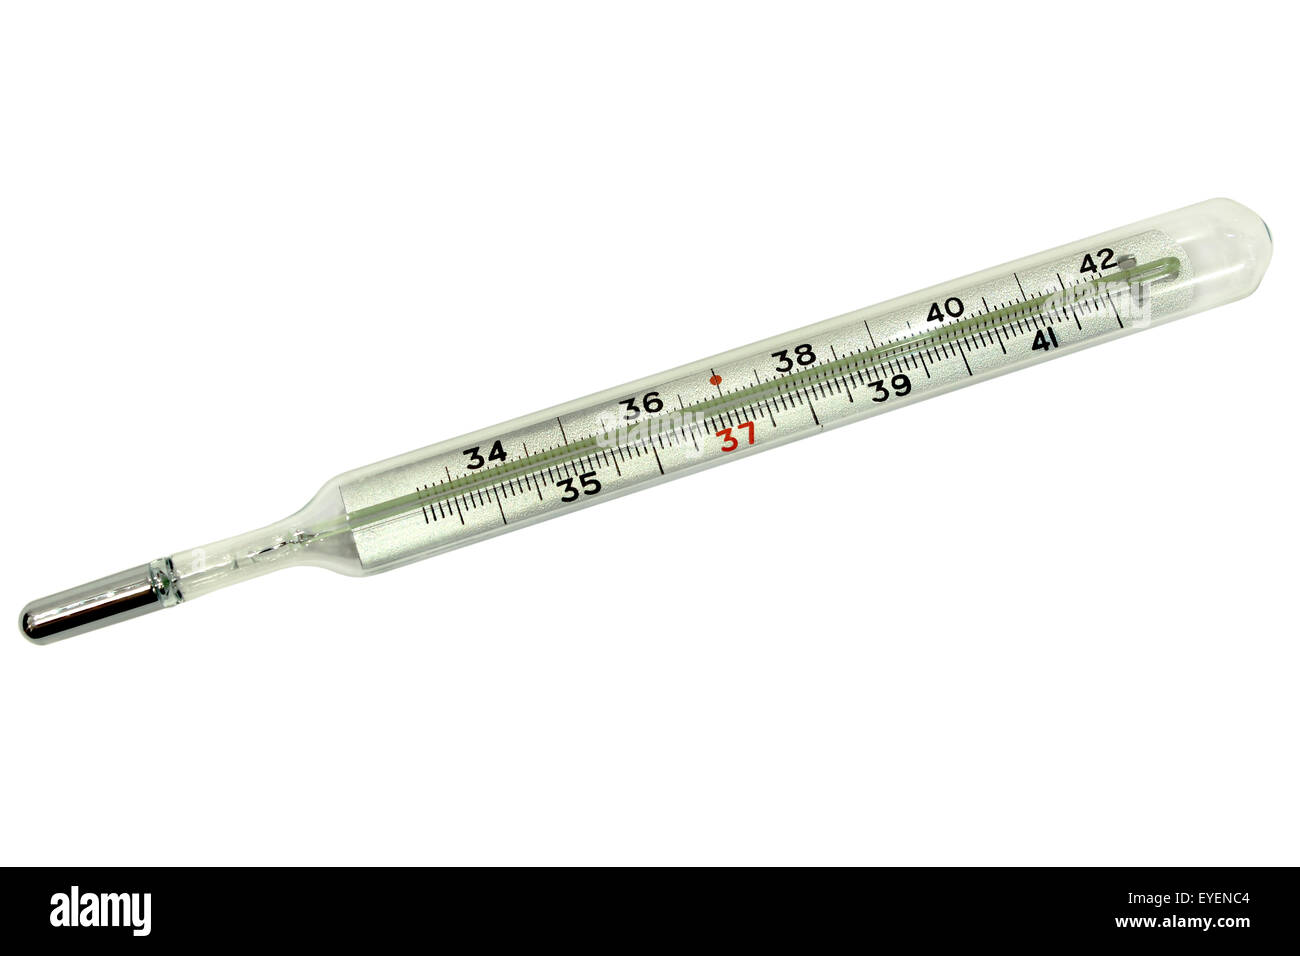 Medical mercury thermometer to measure the temperature of the body in isolation on a white background. - Stock Image